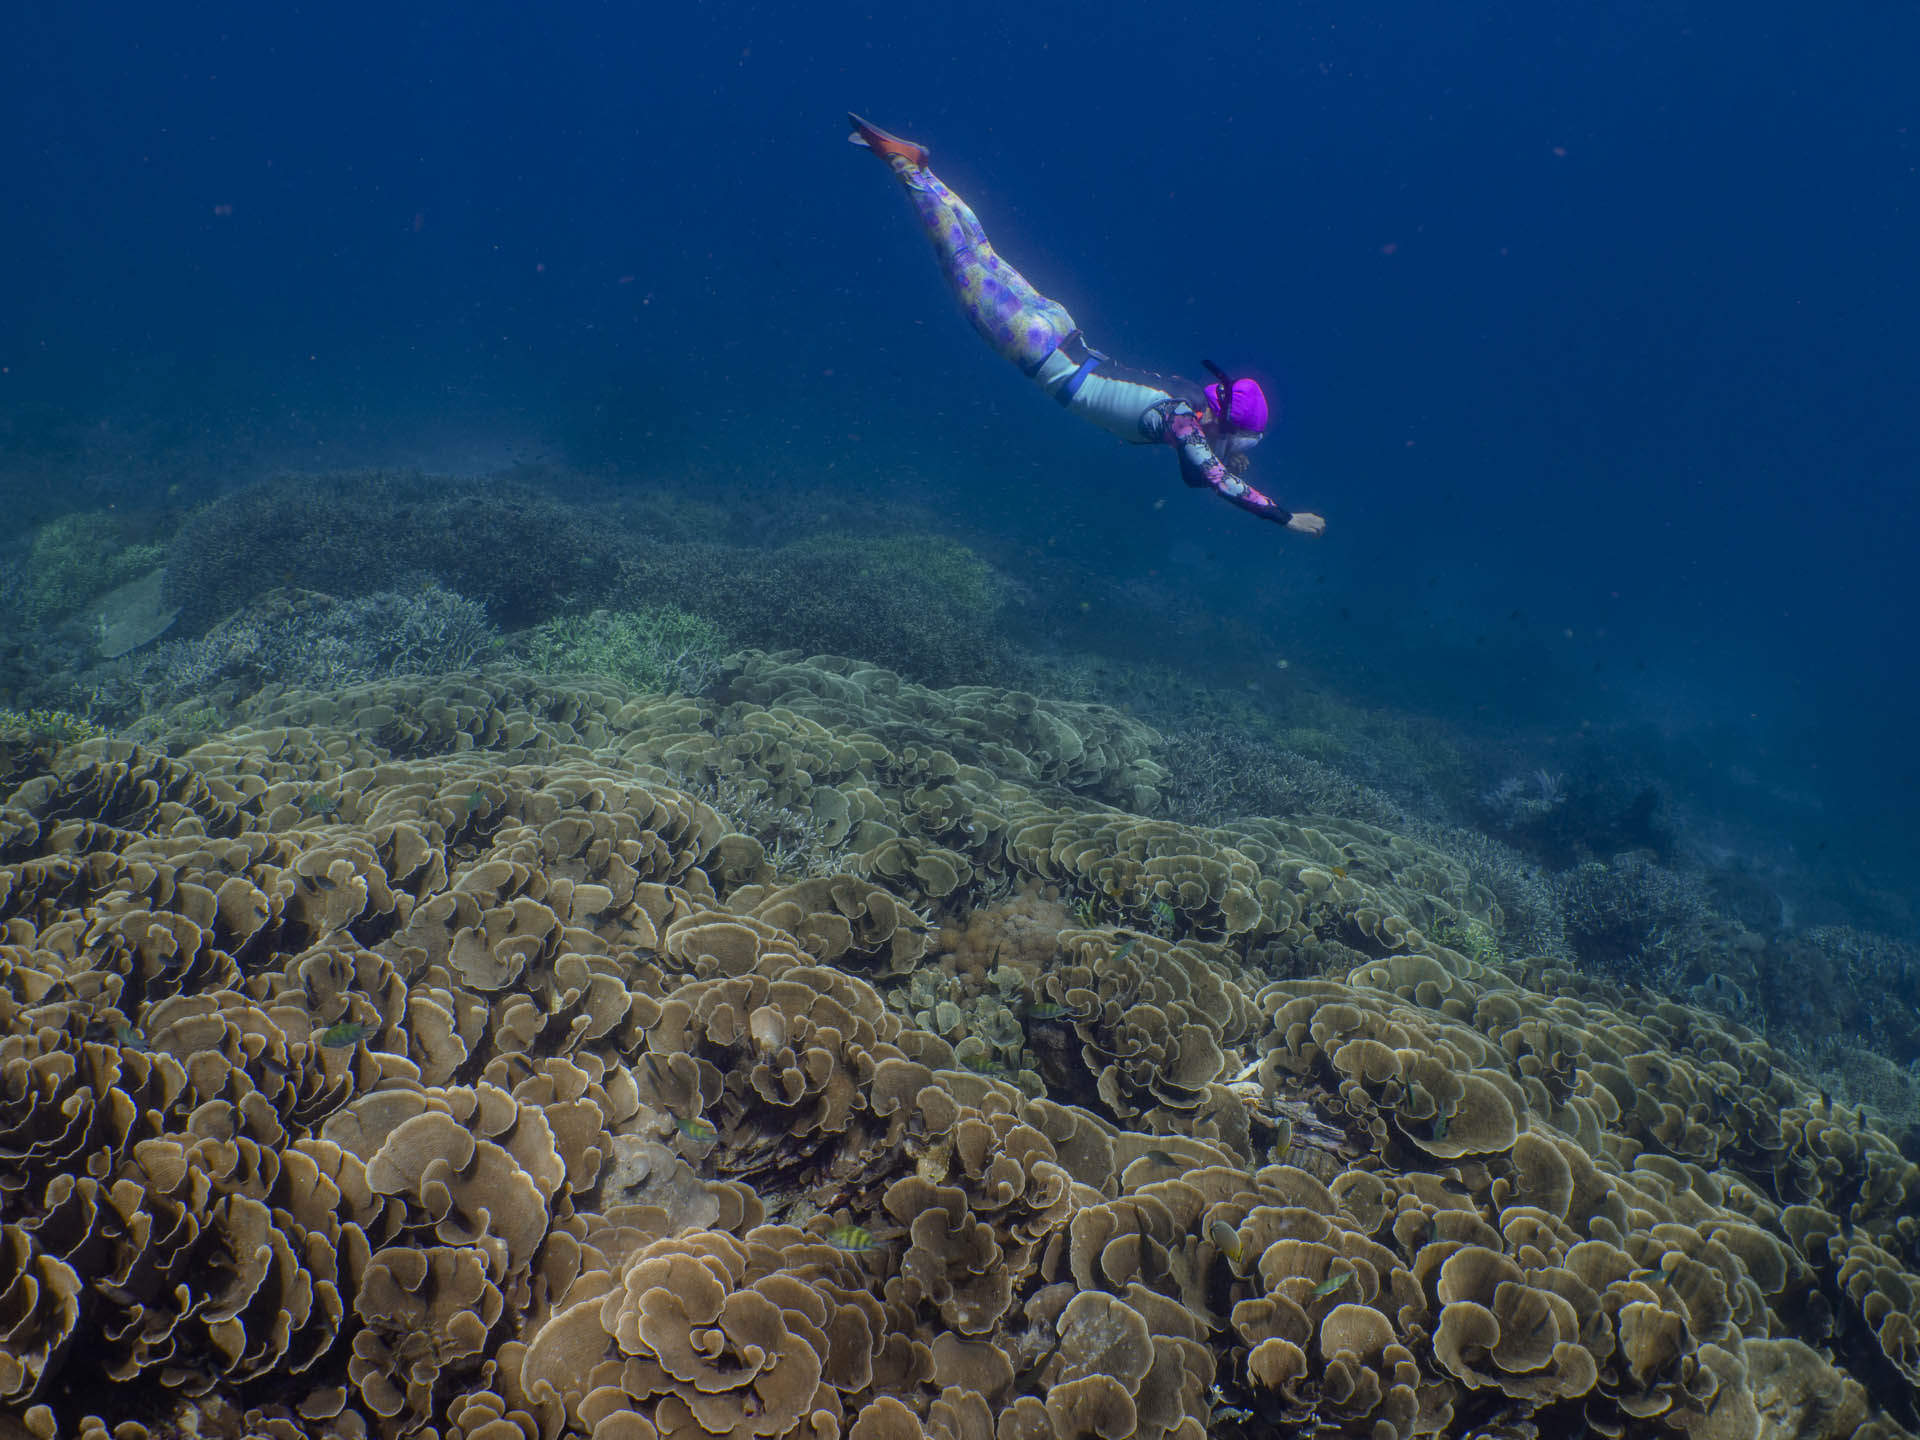 snorkeler equalizing while diving to coral reef